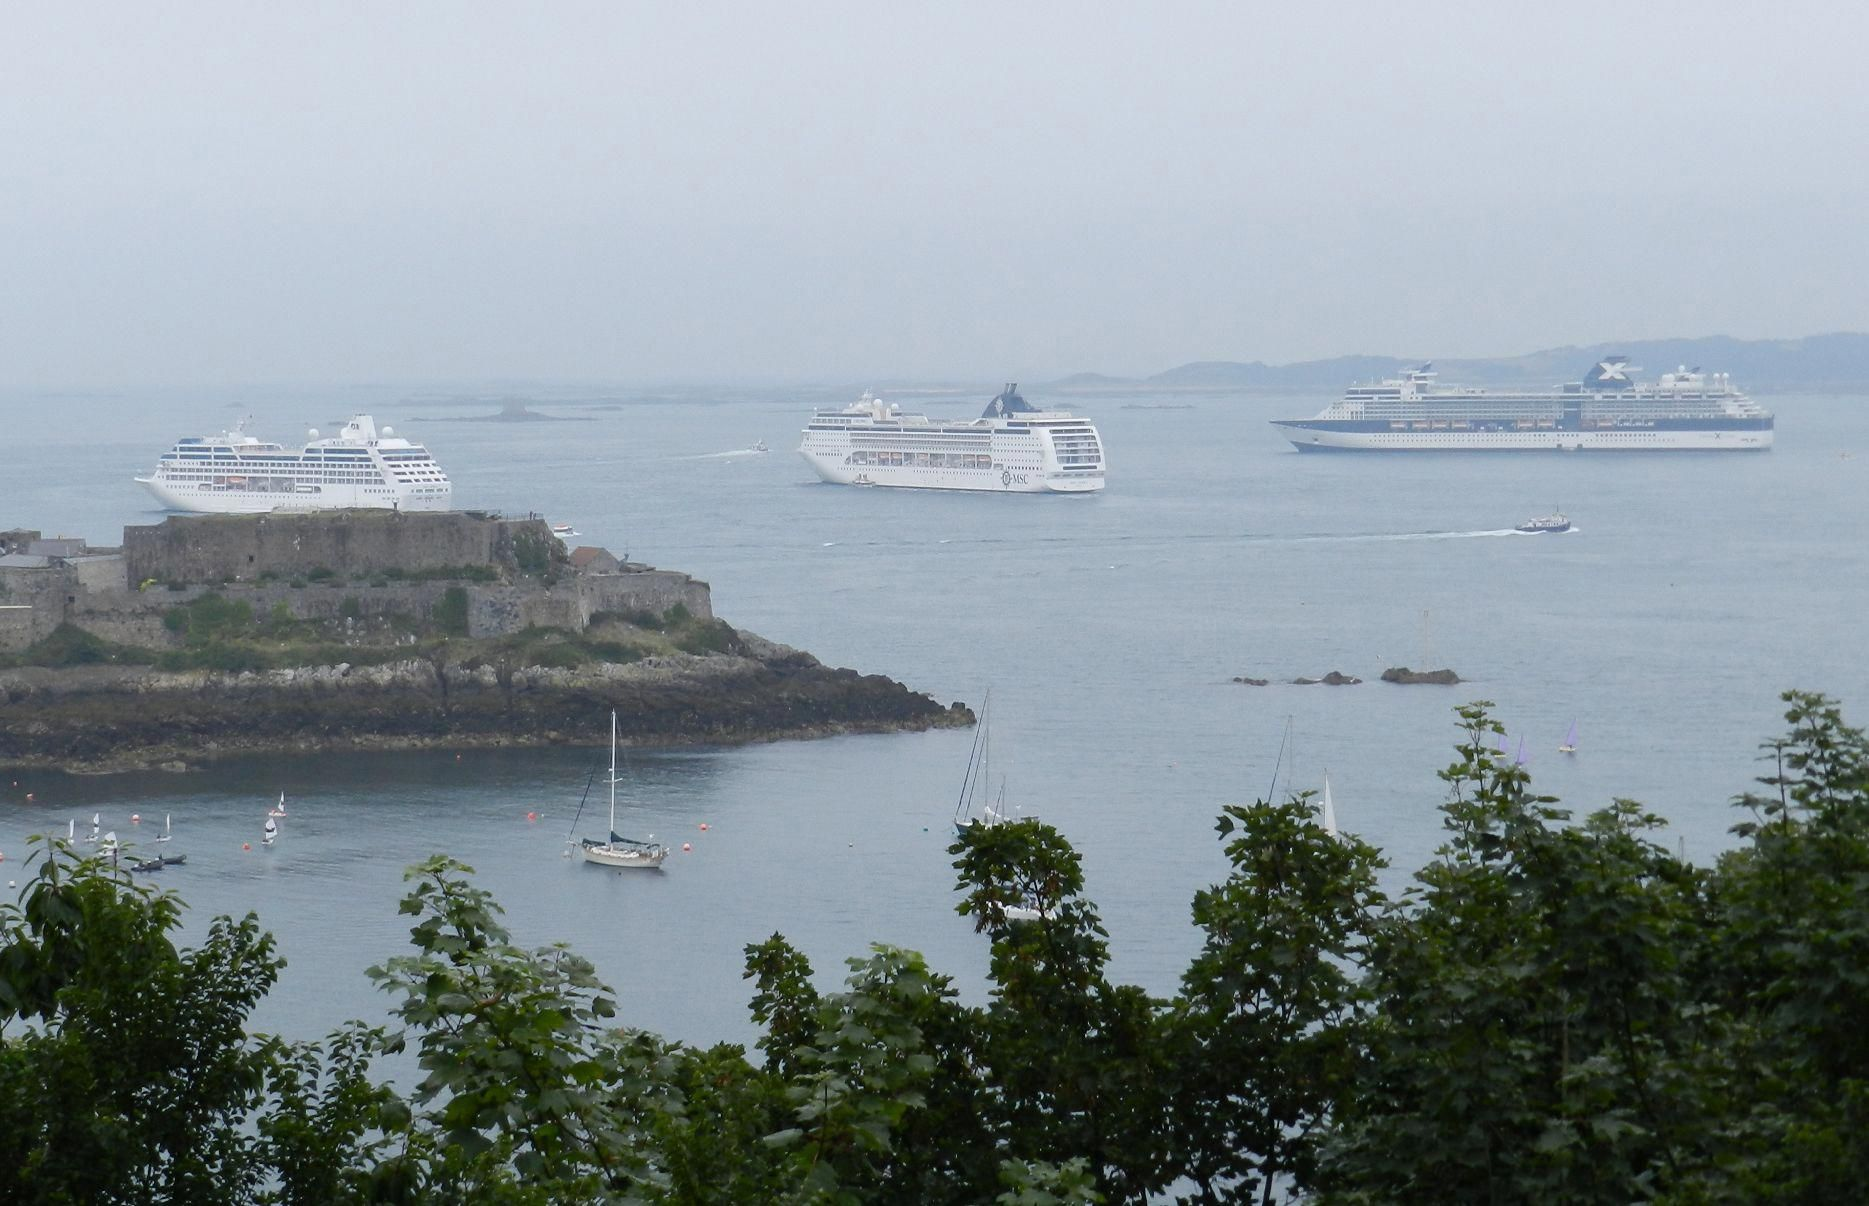 Receive Excellent Tips On Cruise Ship Celebrity Infinity They Are On Call For You On Our Web Site In 2020 Cruise Ship Celebrity Infinity Guernsey Island